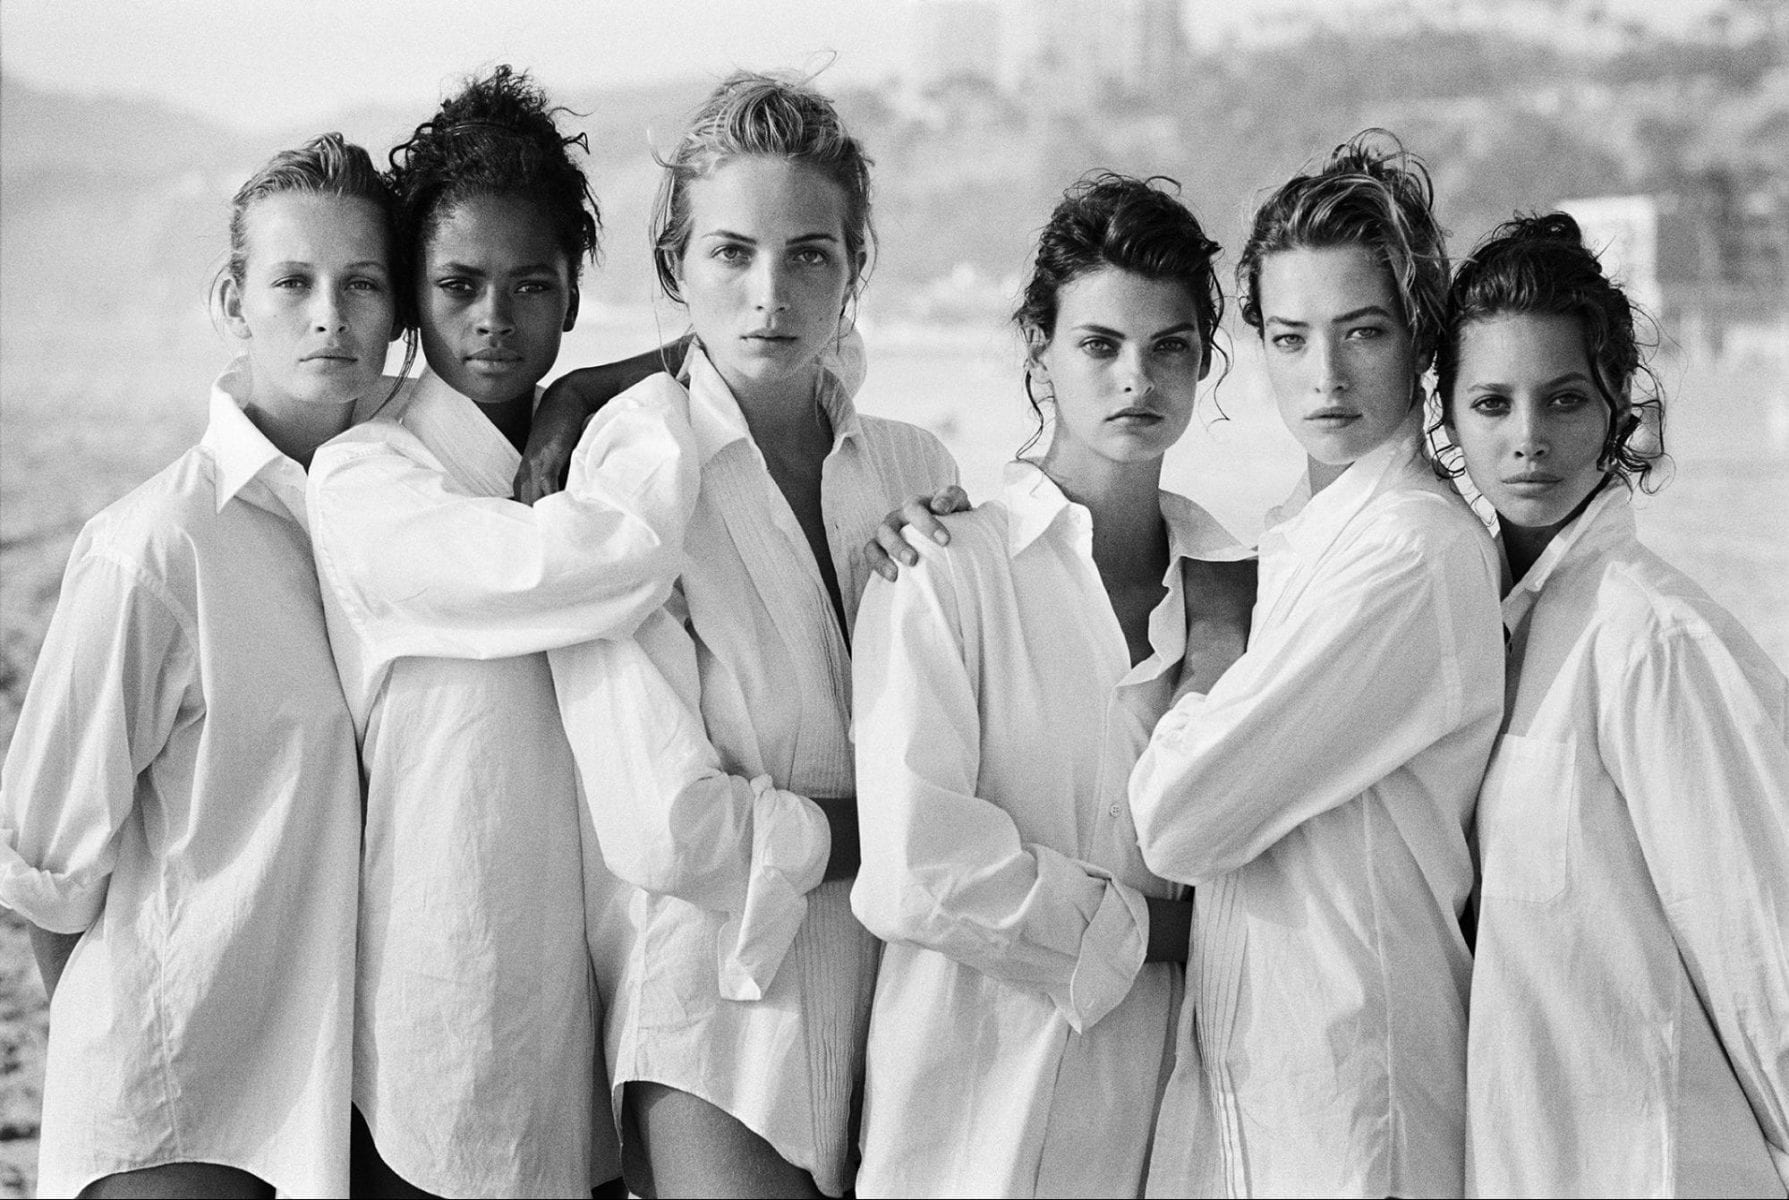 Shot on Hasselblad: Estelle Lefébure, Karen Alexander, Rachel Williams, Linda Evangelista, Tatjana Patitz and Christy Turlington, Malibu, 1988 © Peter Lindbergh